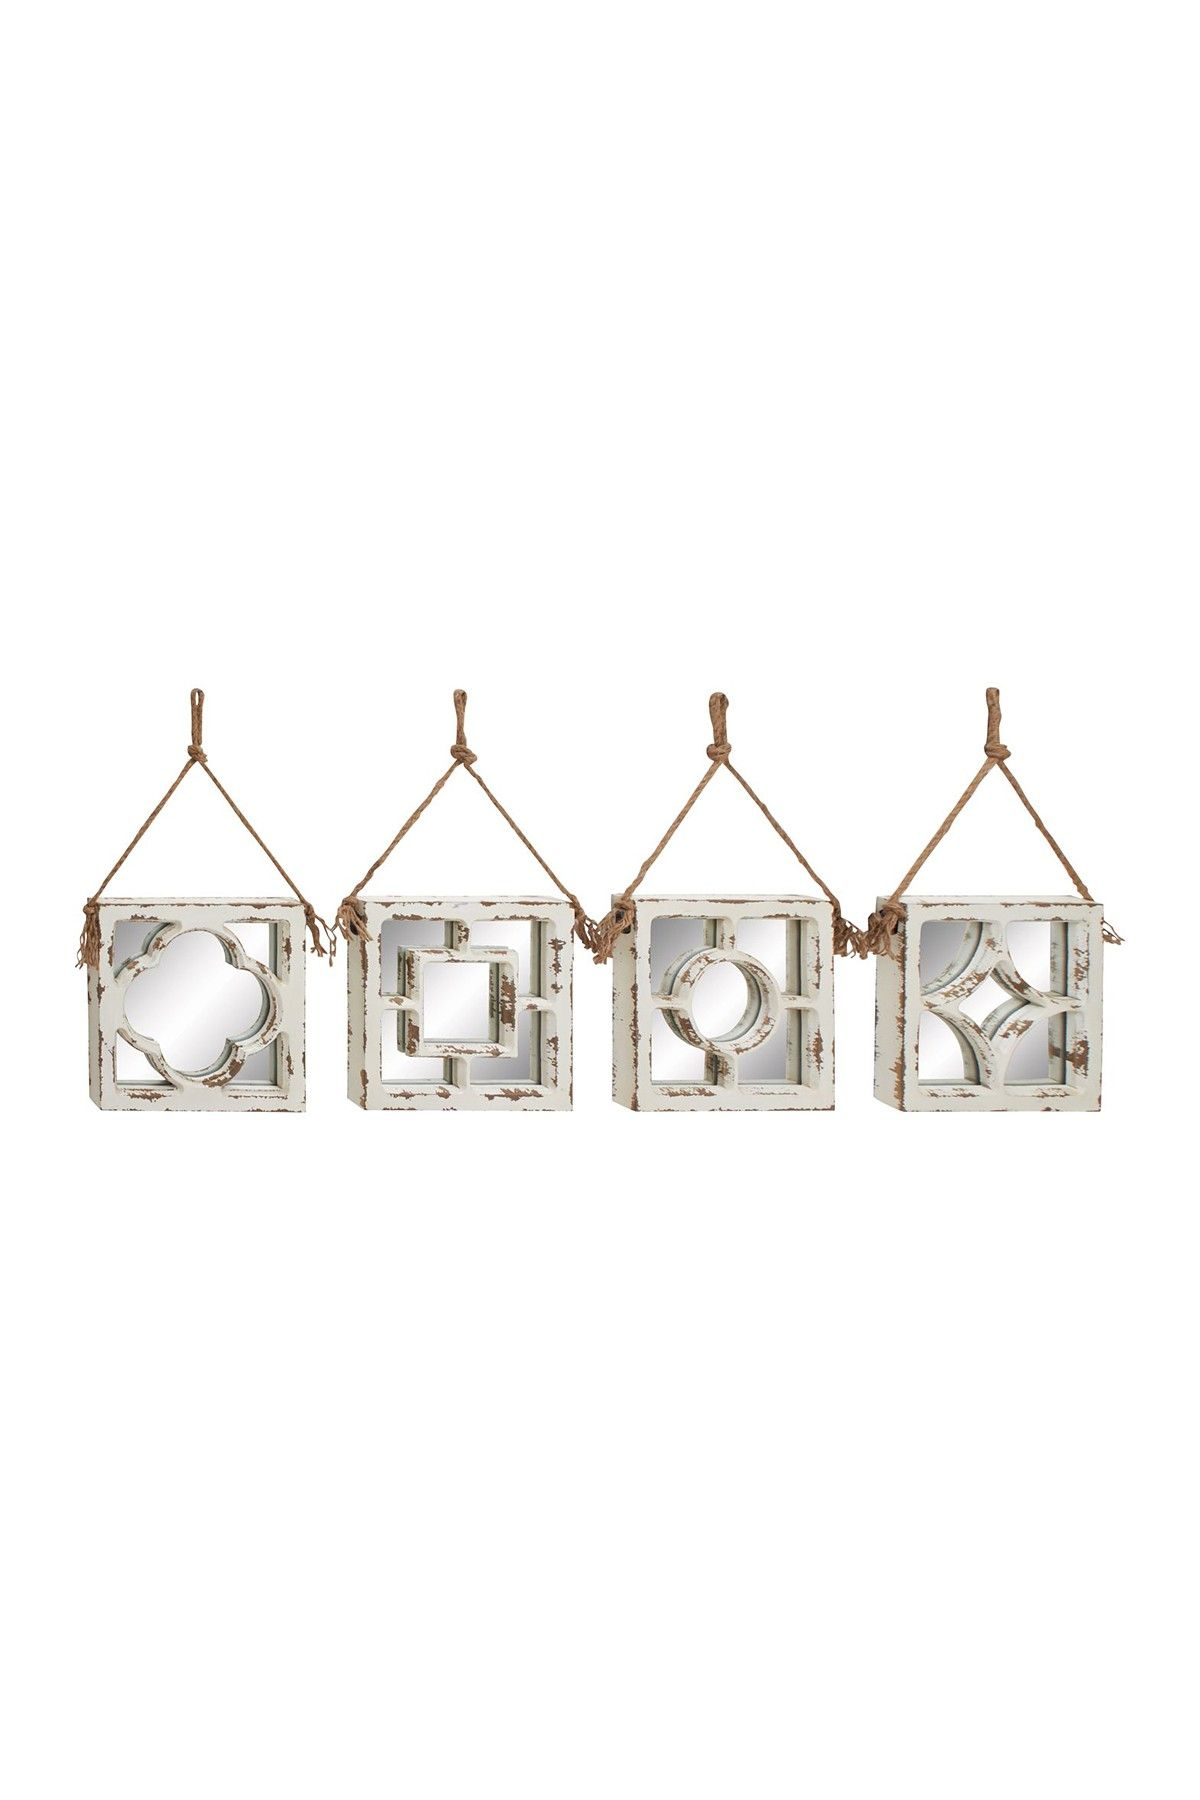 Uma Wood Wall Mirrors Set Of 4 Bed Bath Pinterest Mirror Set